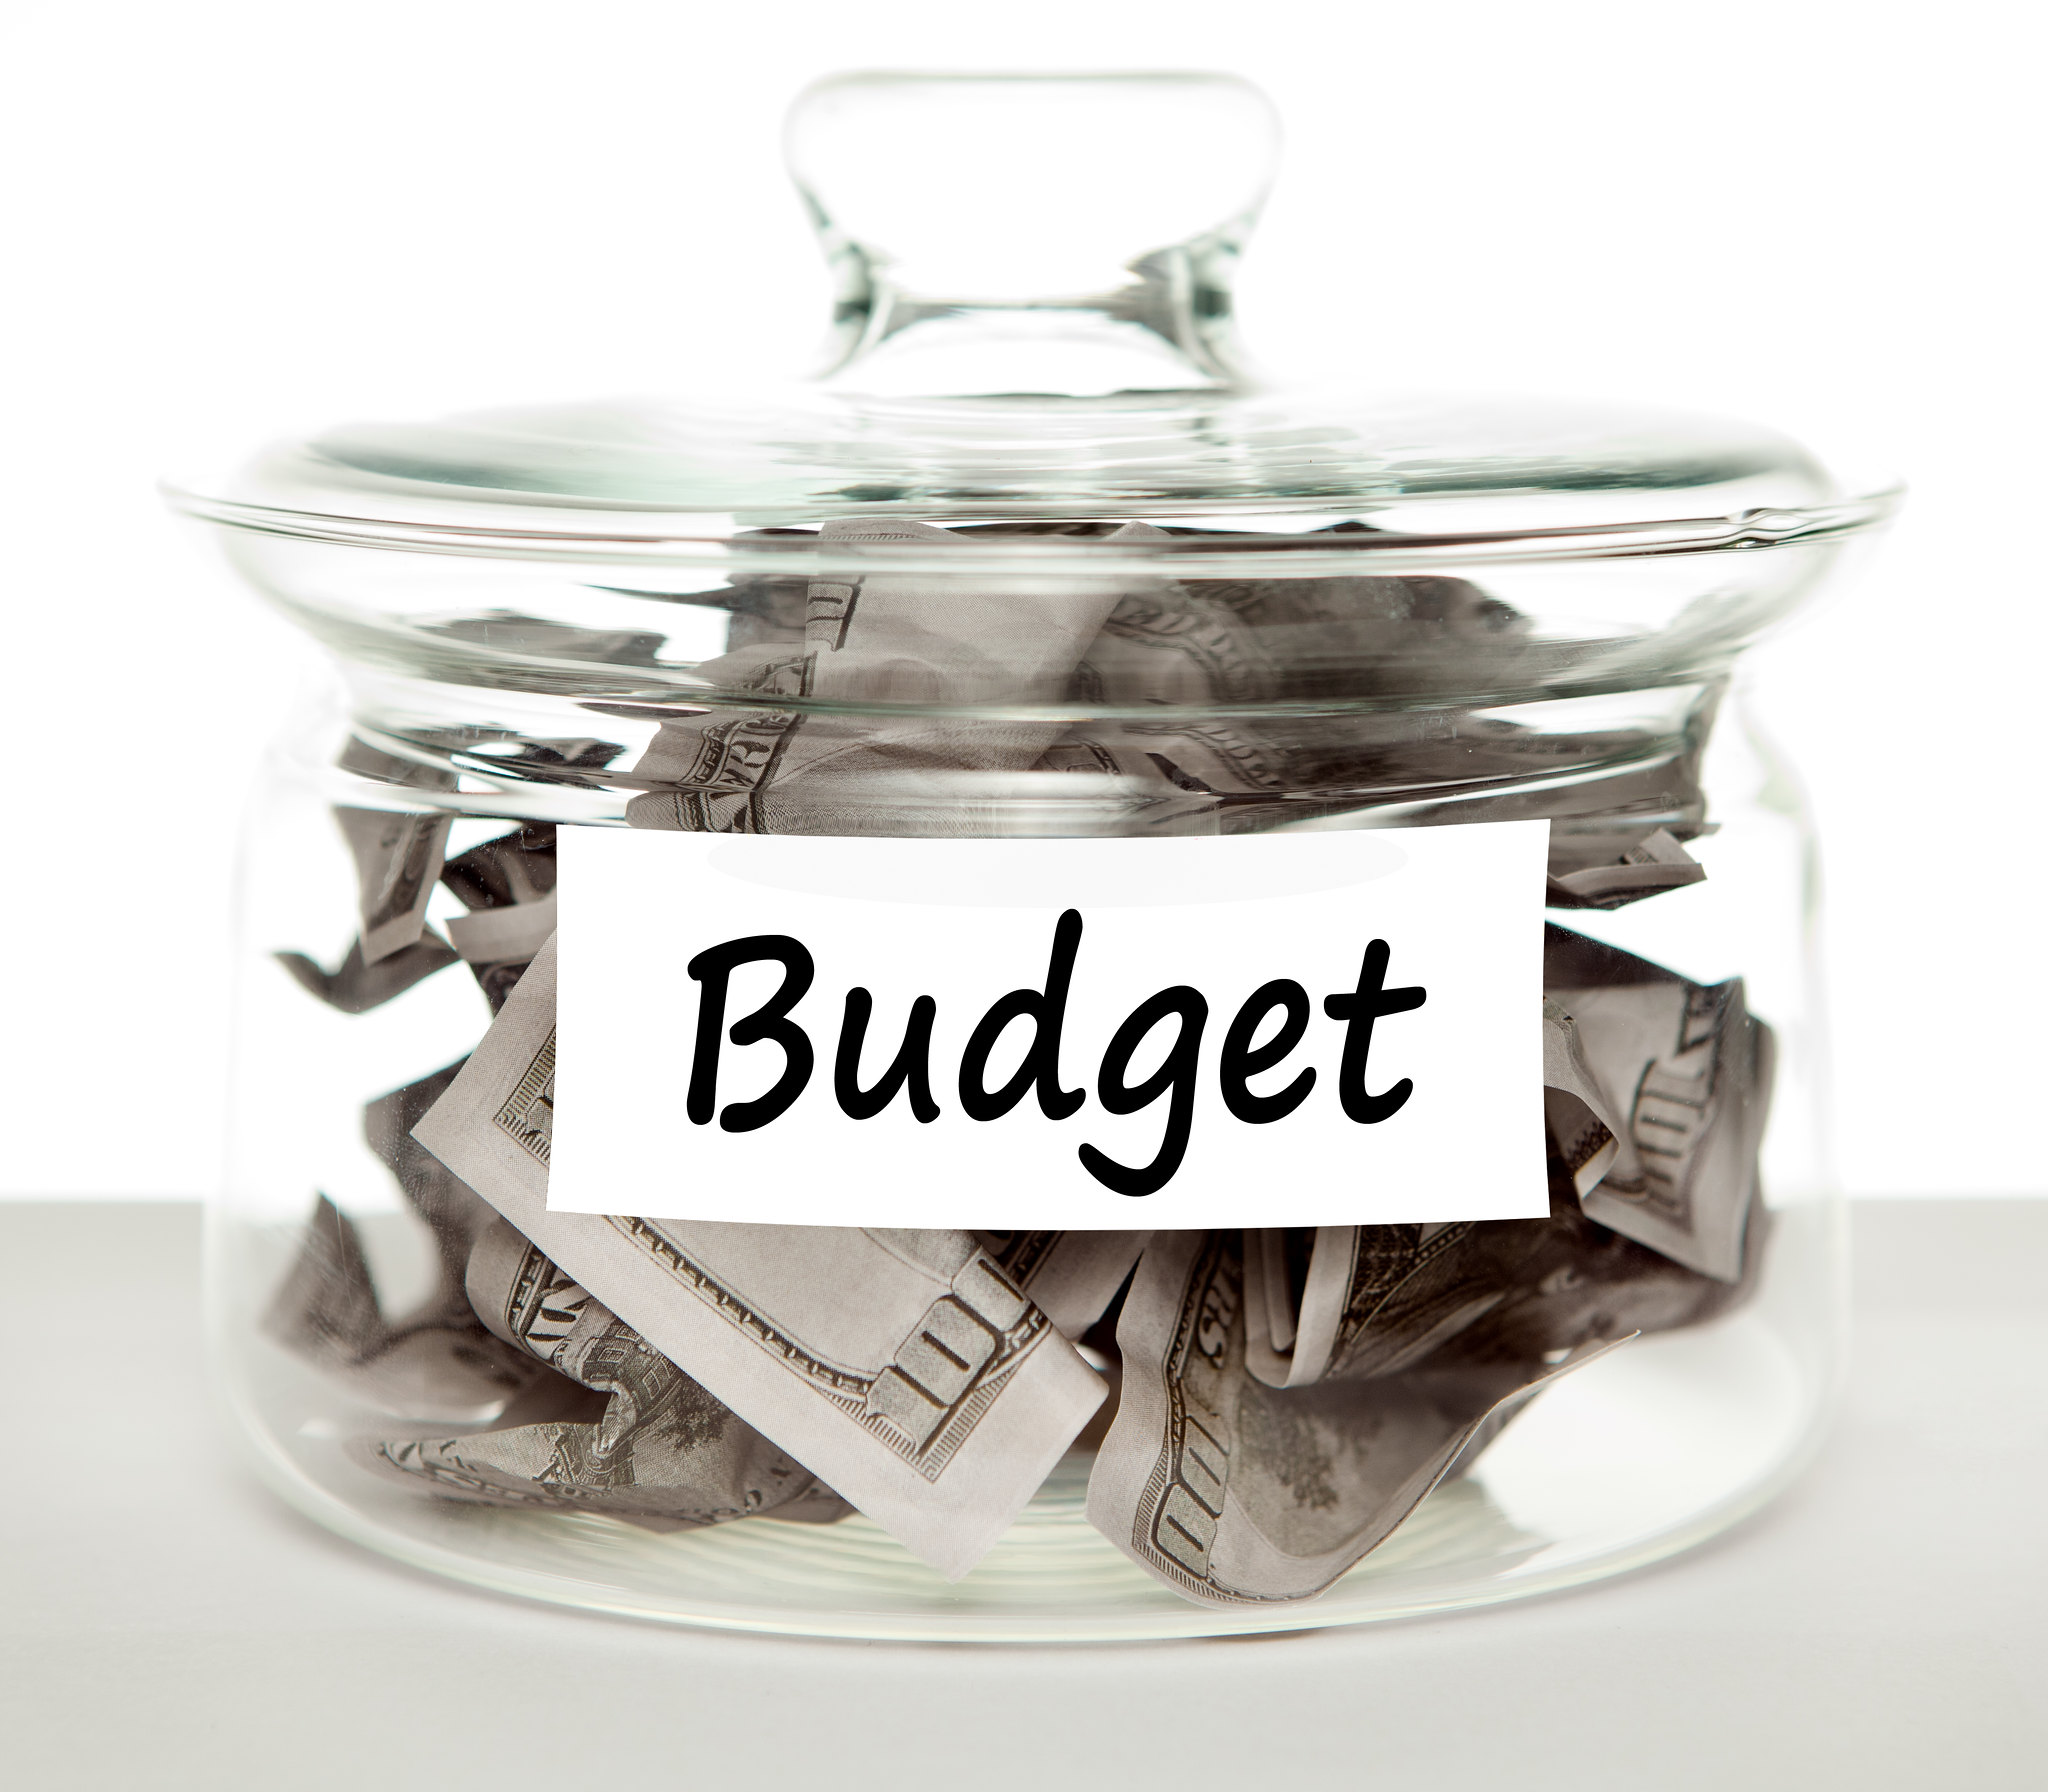 Whether you're traveling domestically or internationally, budgeting ...